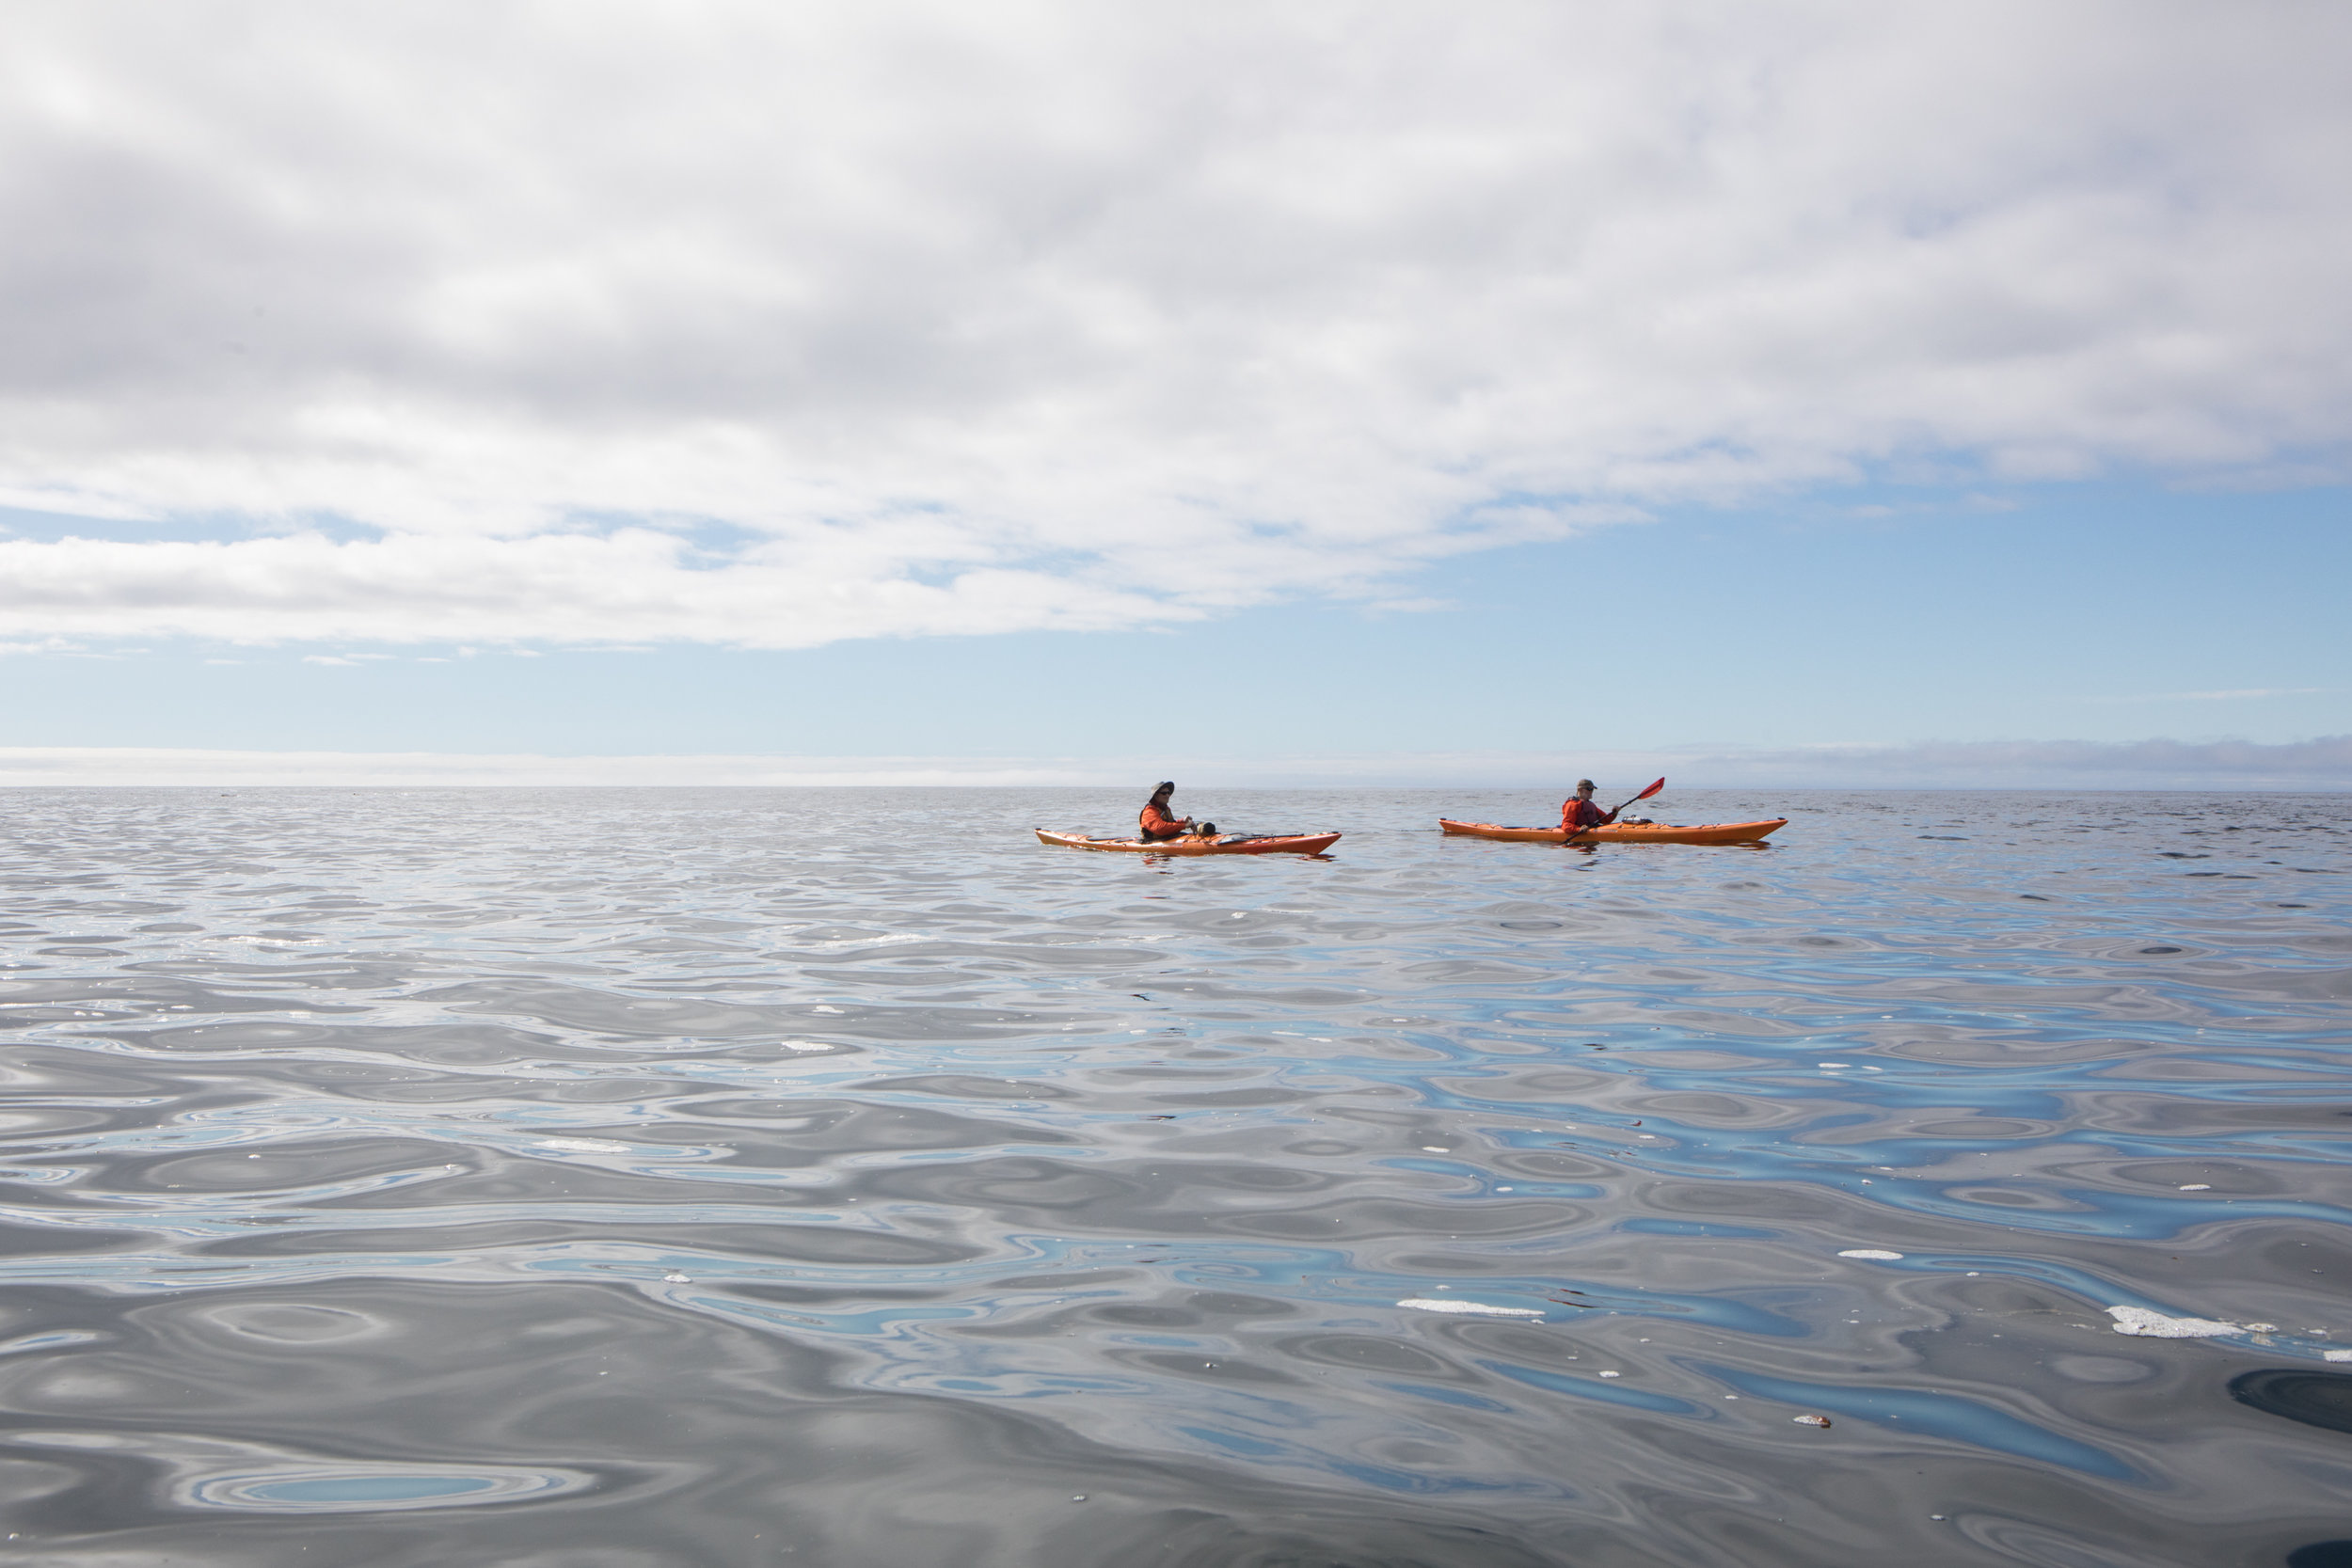 Nate and Wayne take advantage of the calm conditions to paddle out around Mexico Point. Open water stretches as far as the eye can see beyond Cordova Bay to Dixon Entrance.